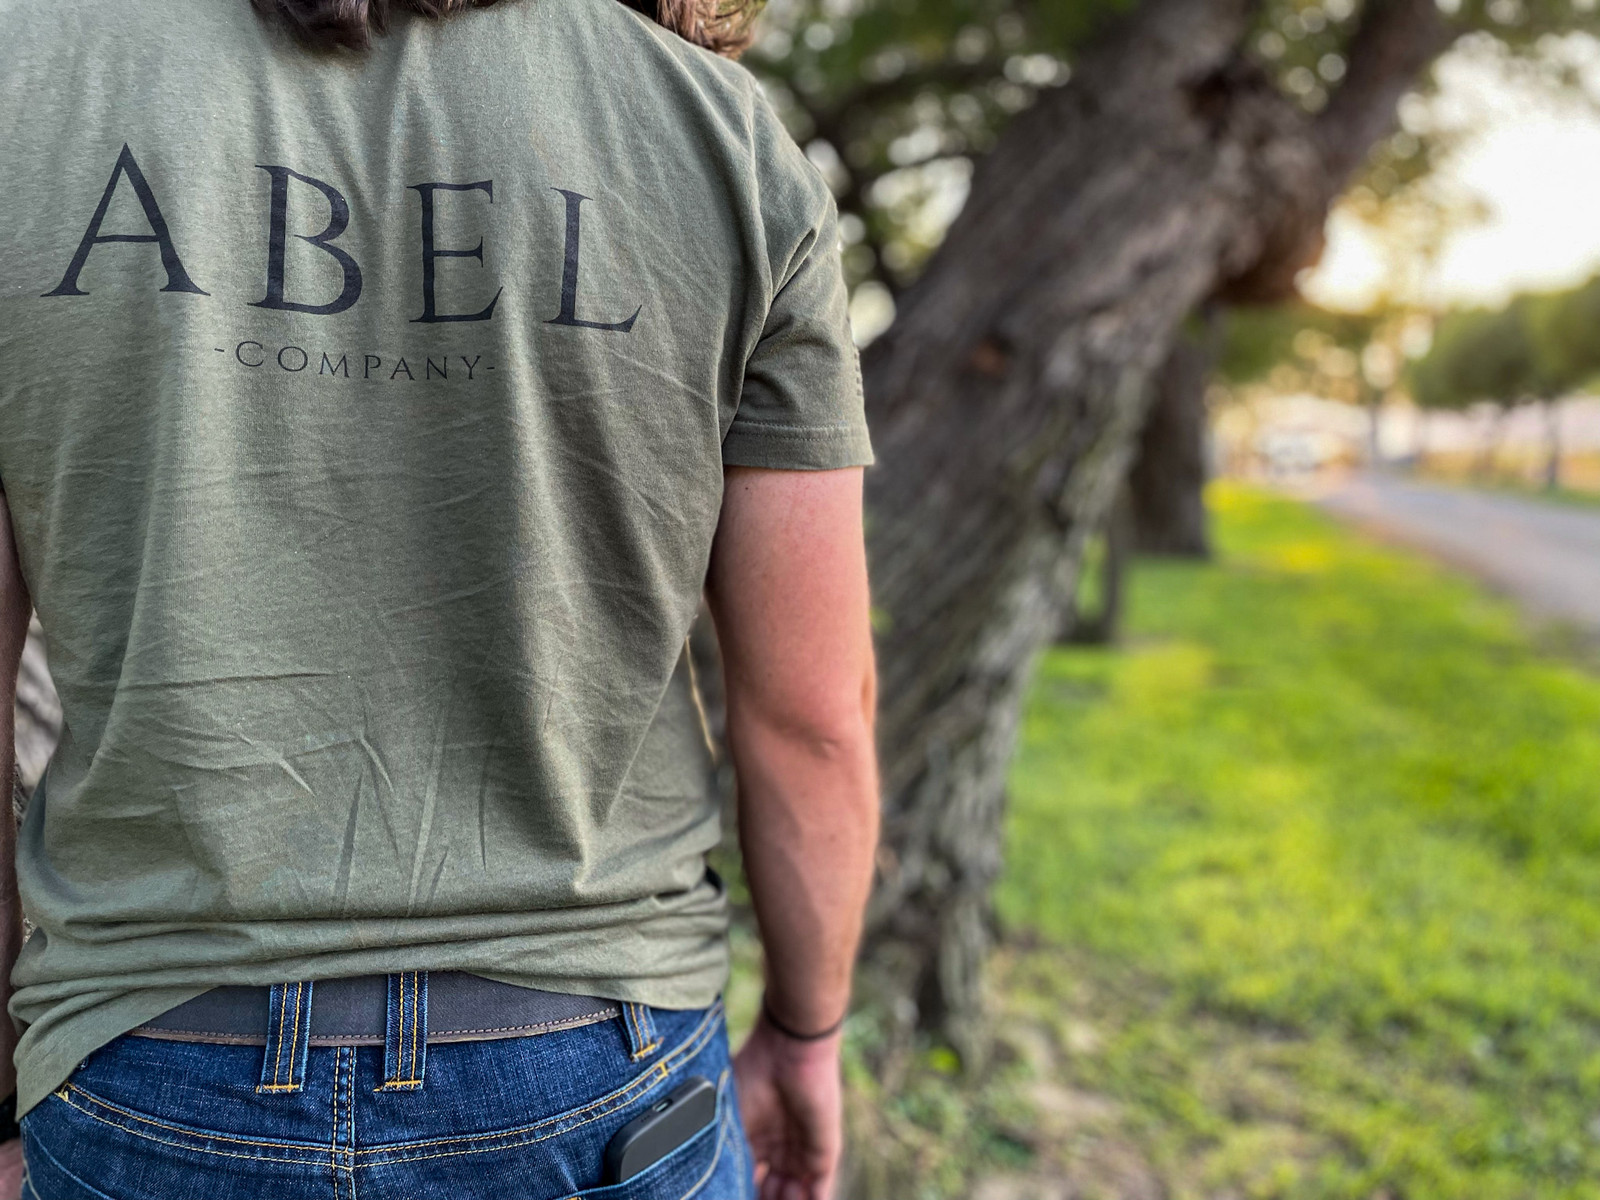 Picture of the green Abel Company branded shirt being worn in front of trees